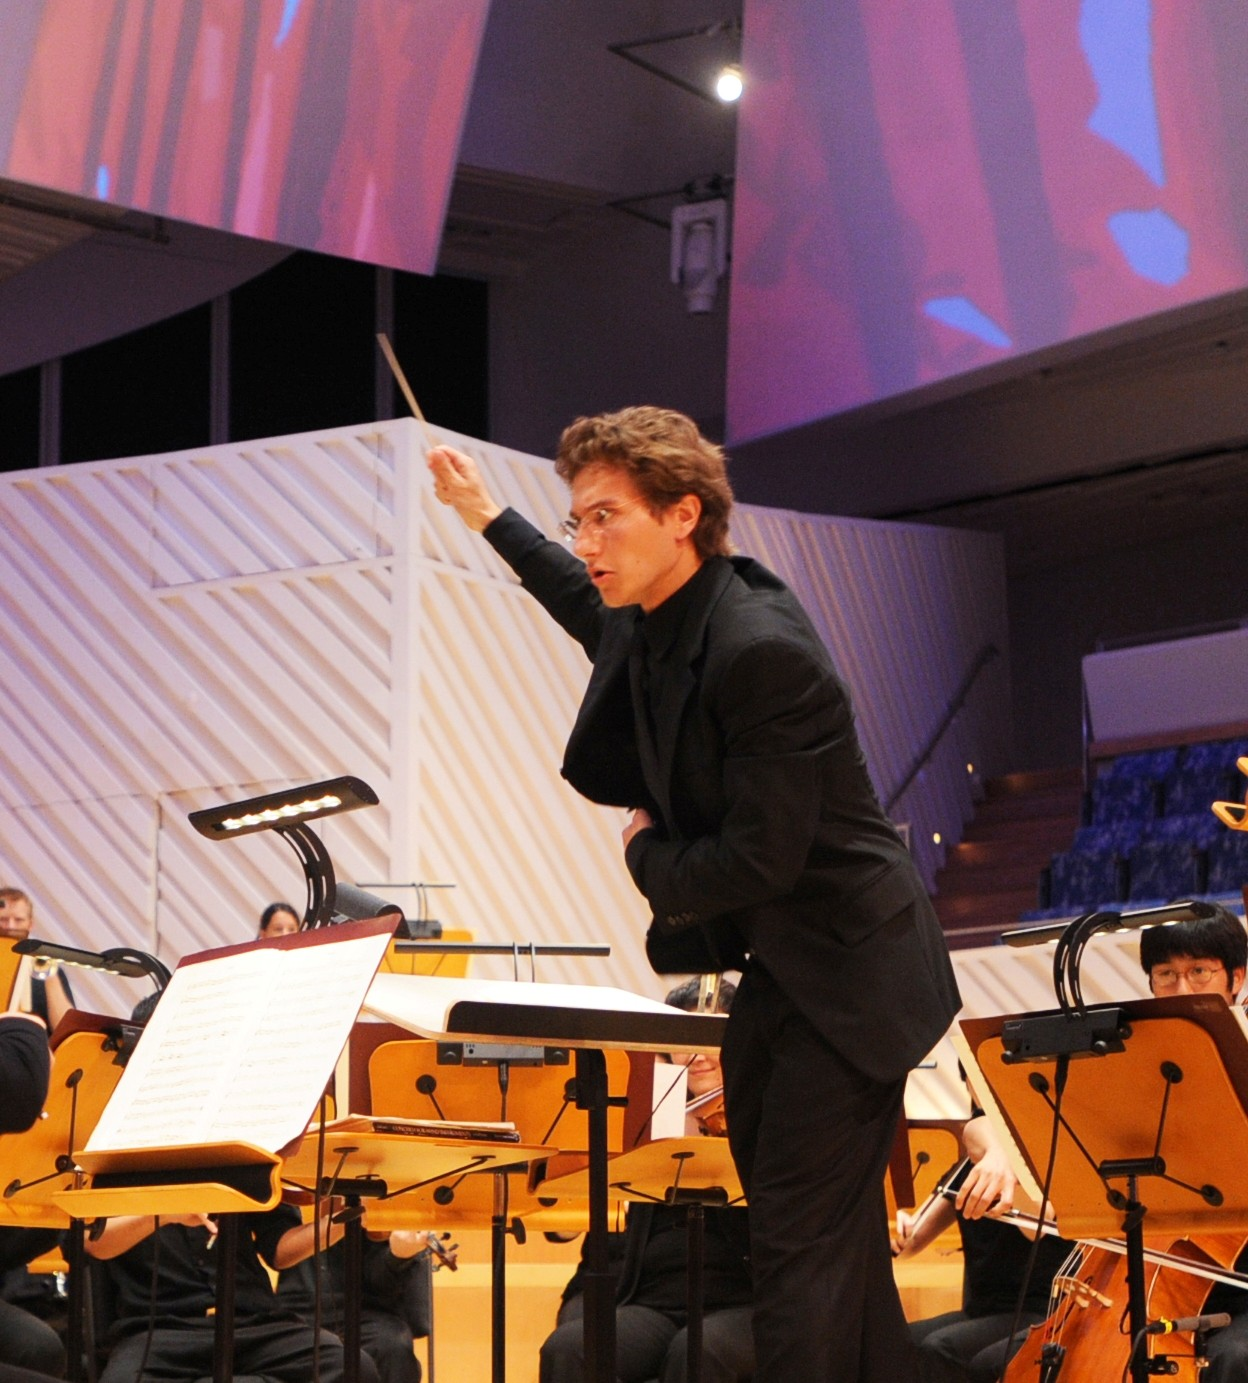 Guest conductor Teddy Abrams leads the Jacksonville Symphony Orchestra and plays piano in Gershwin & Tchaikovsky as the symphony opens its 2013-'14 season Oct. 3-5 at the Times-Union Center's Jacoby Symphony Hall in Downtown Jacksonville.